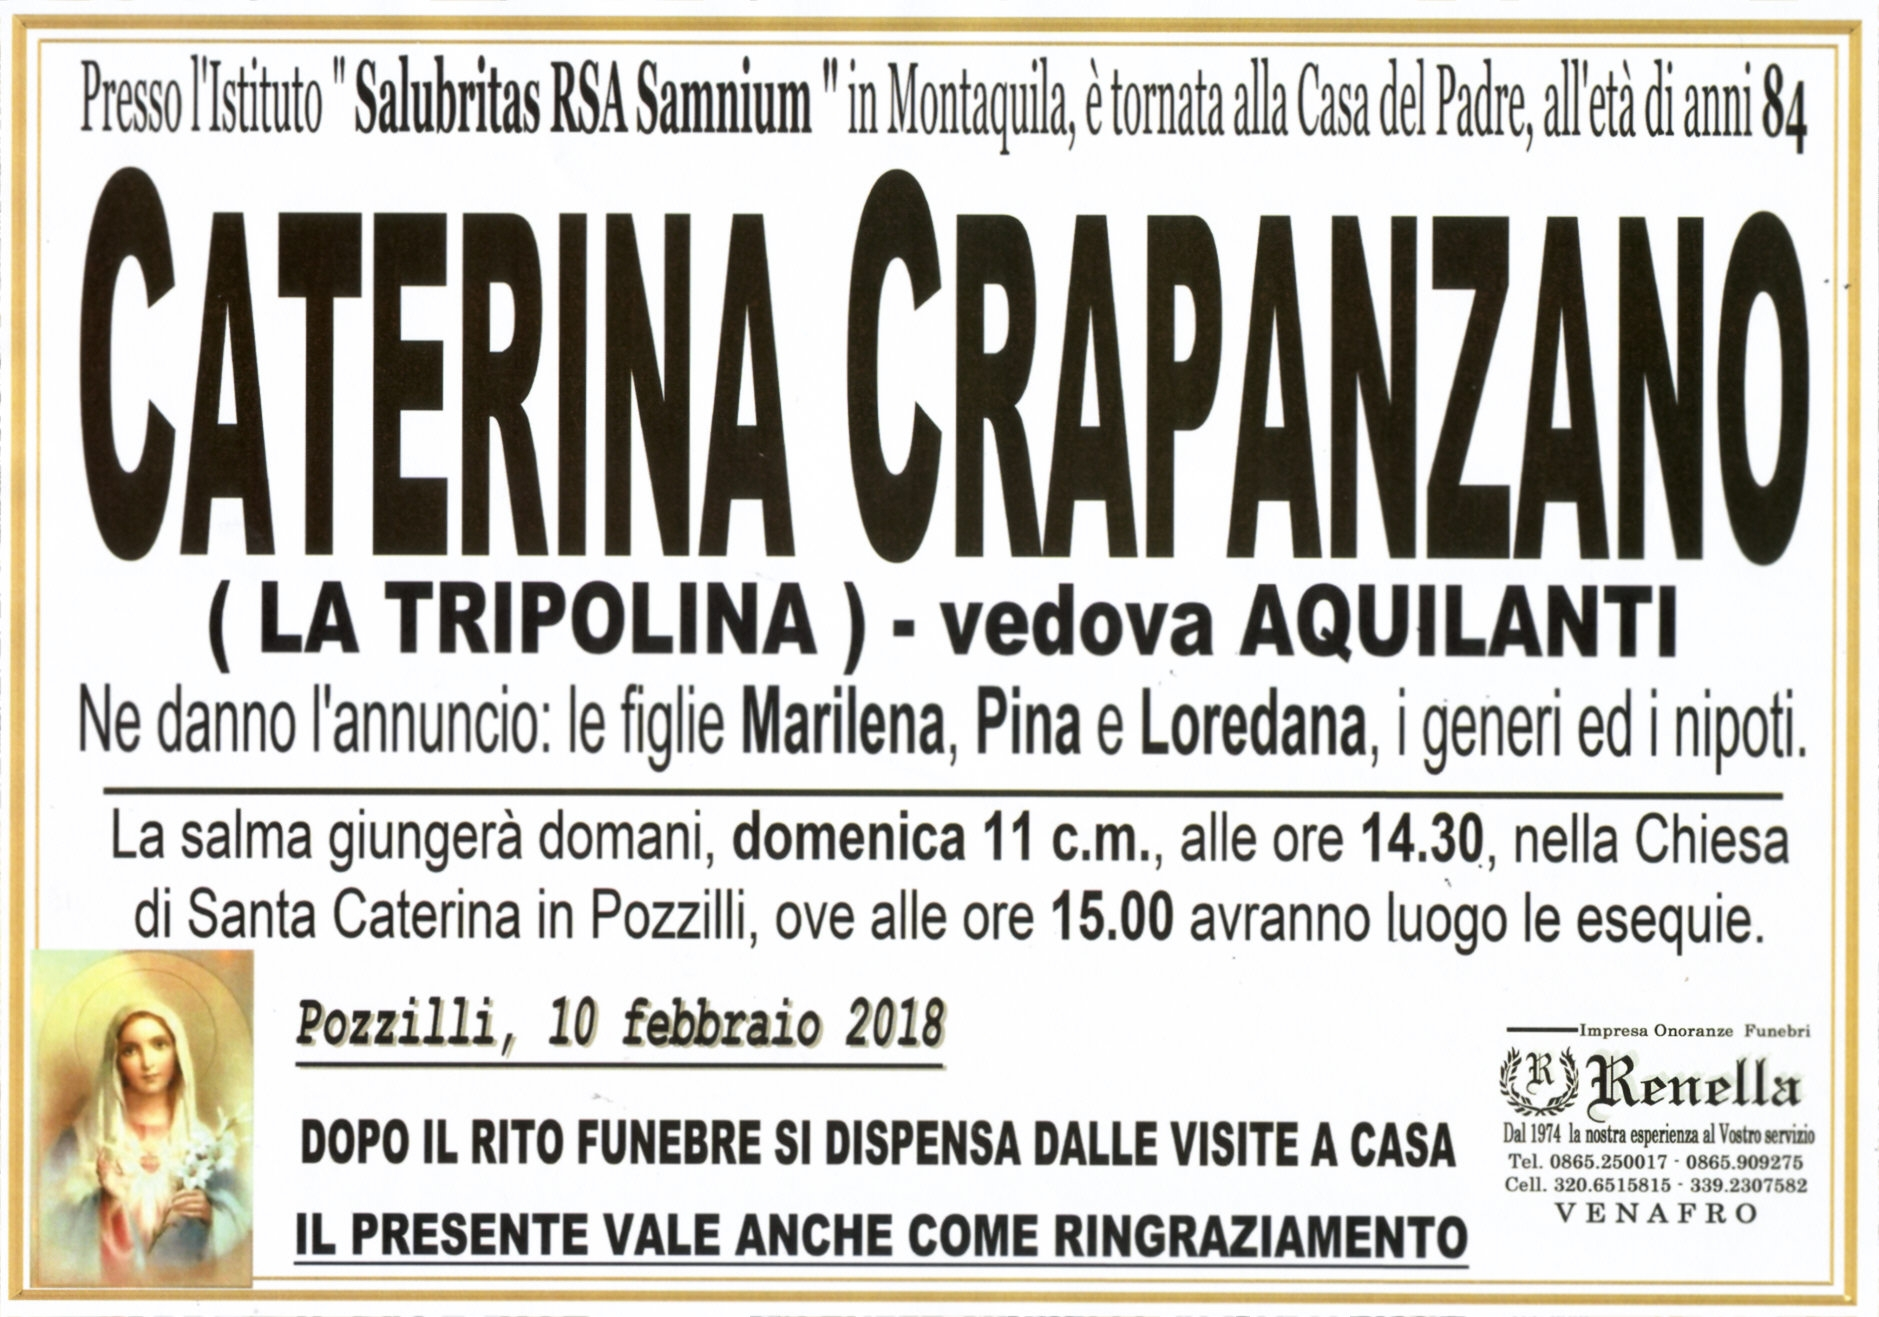 Caterina Capranzano, 10/02/2018, Pozzilli (IS) – Onoranze Funebri Renella